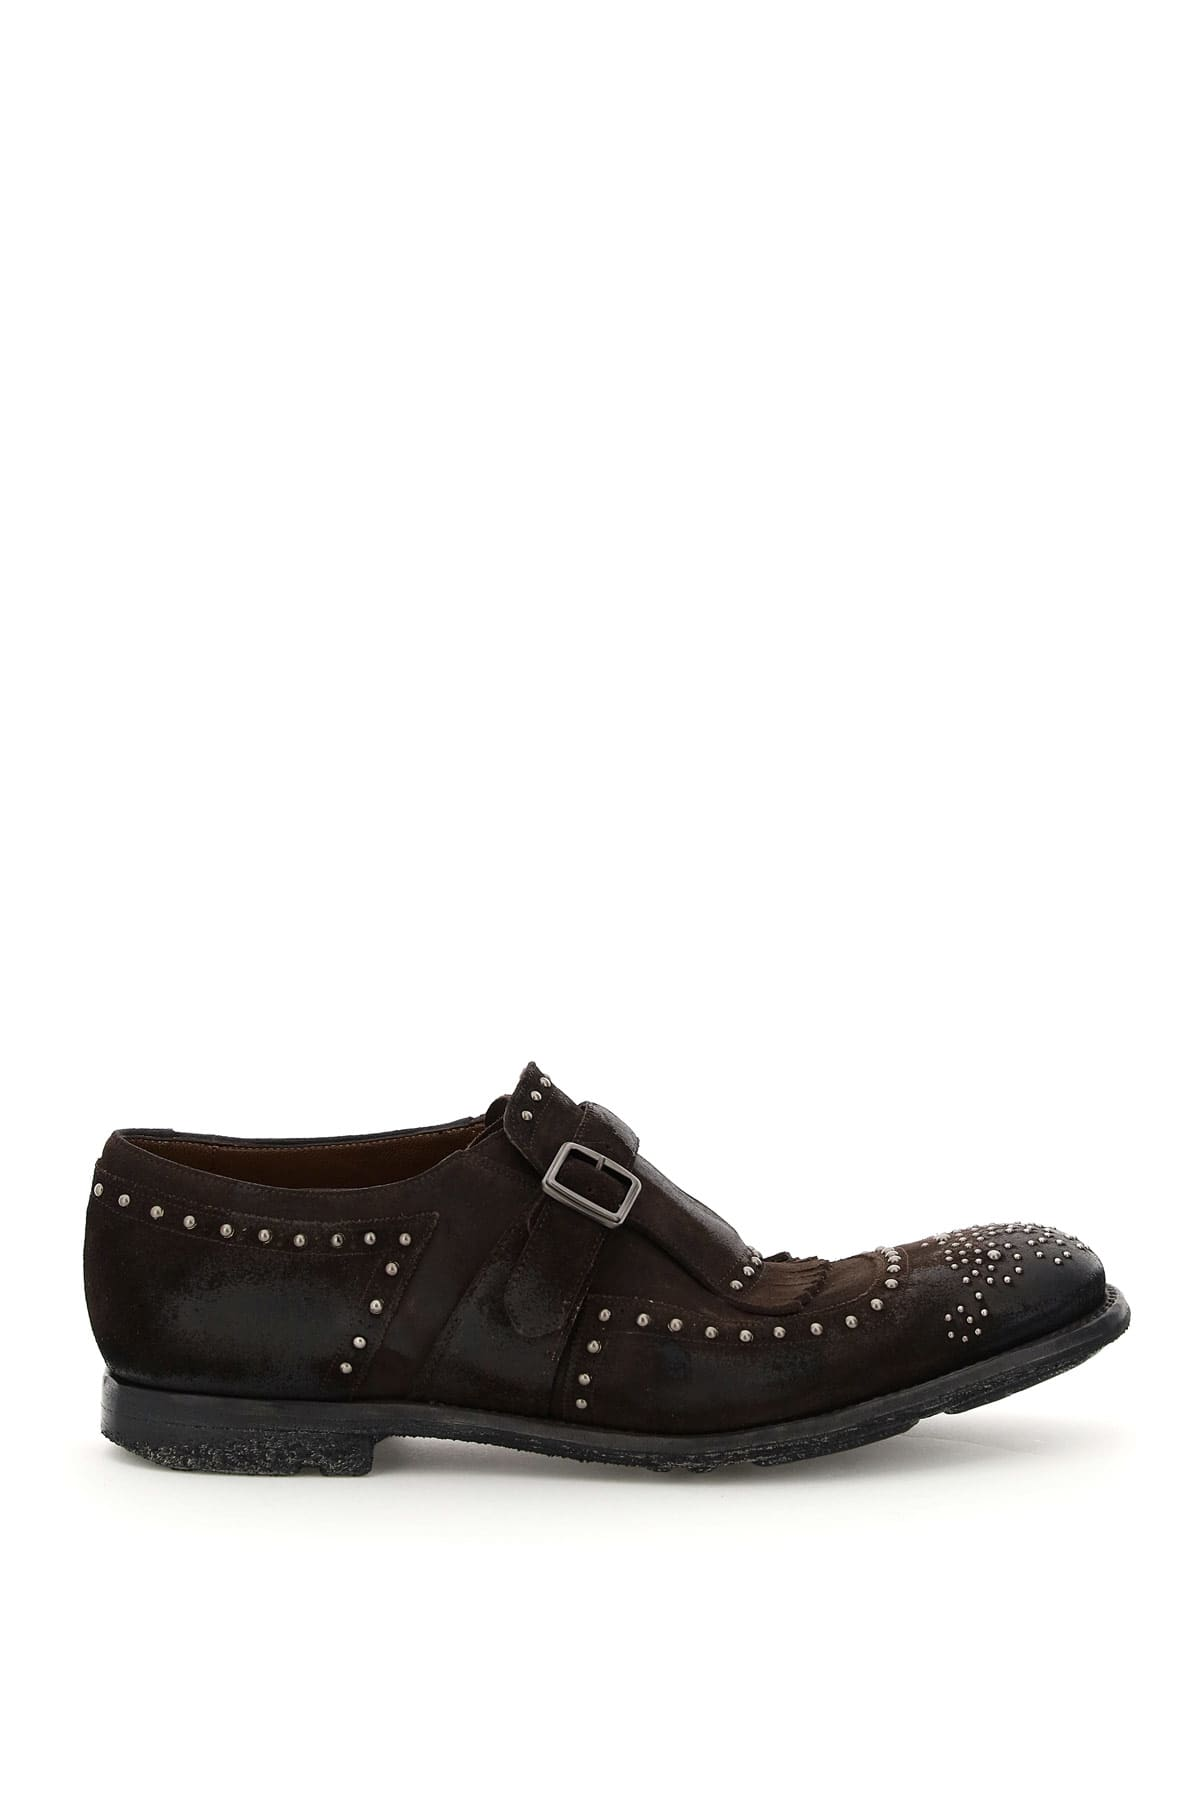 Church's SHANGHAI MONK SHOES WITH STUDS